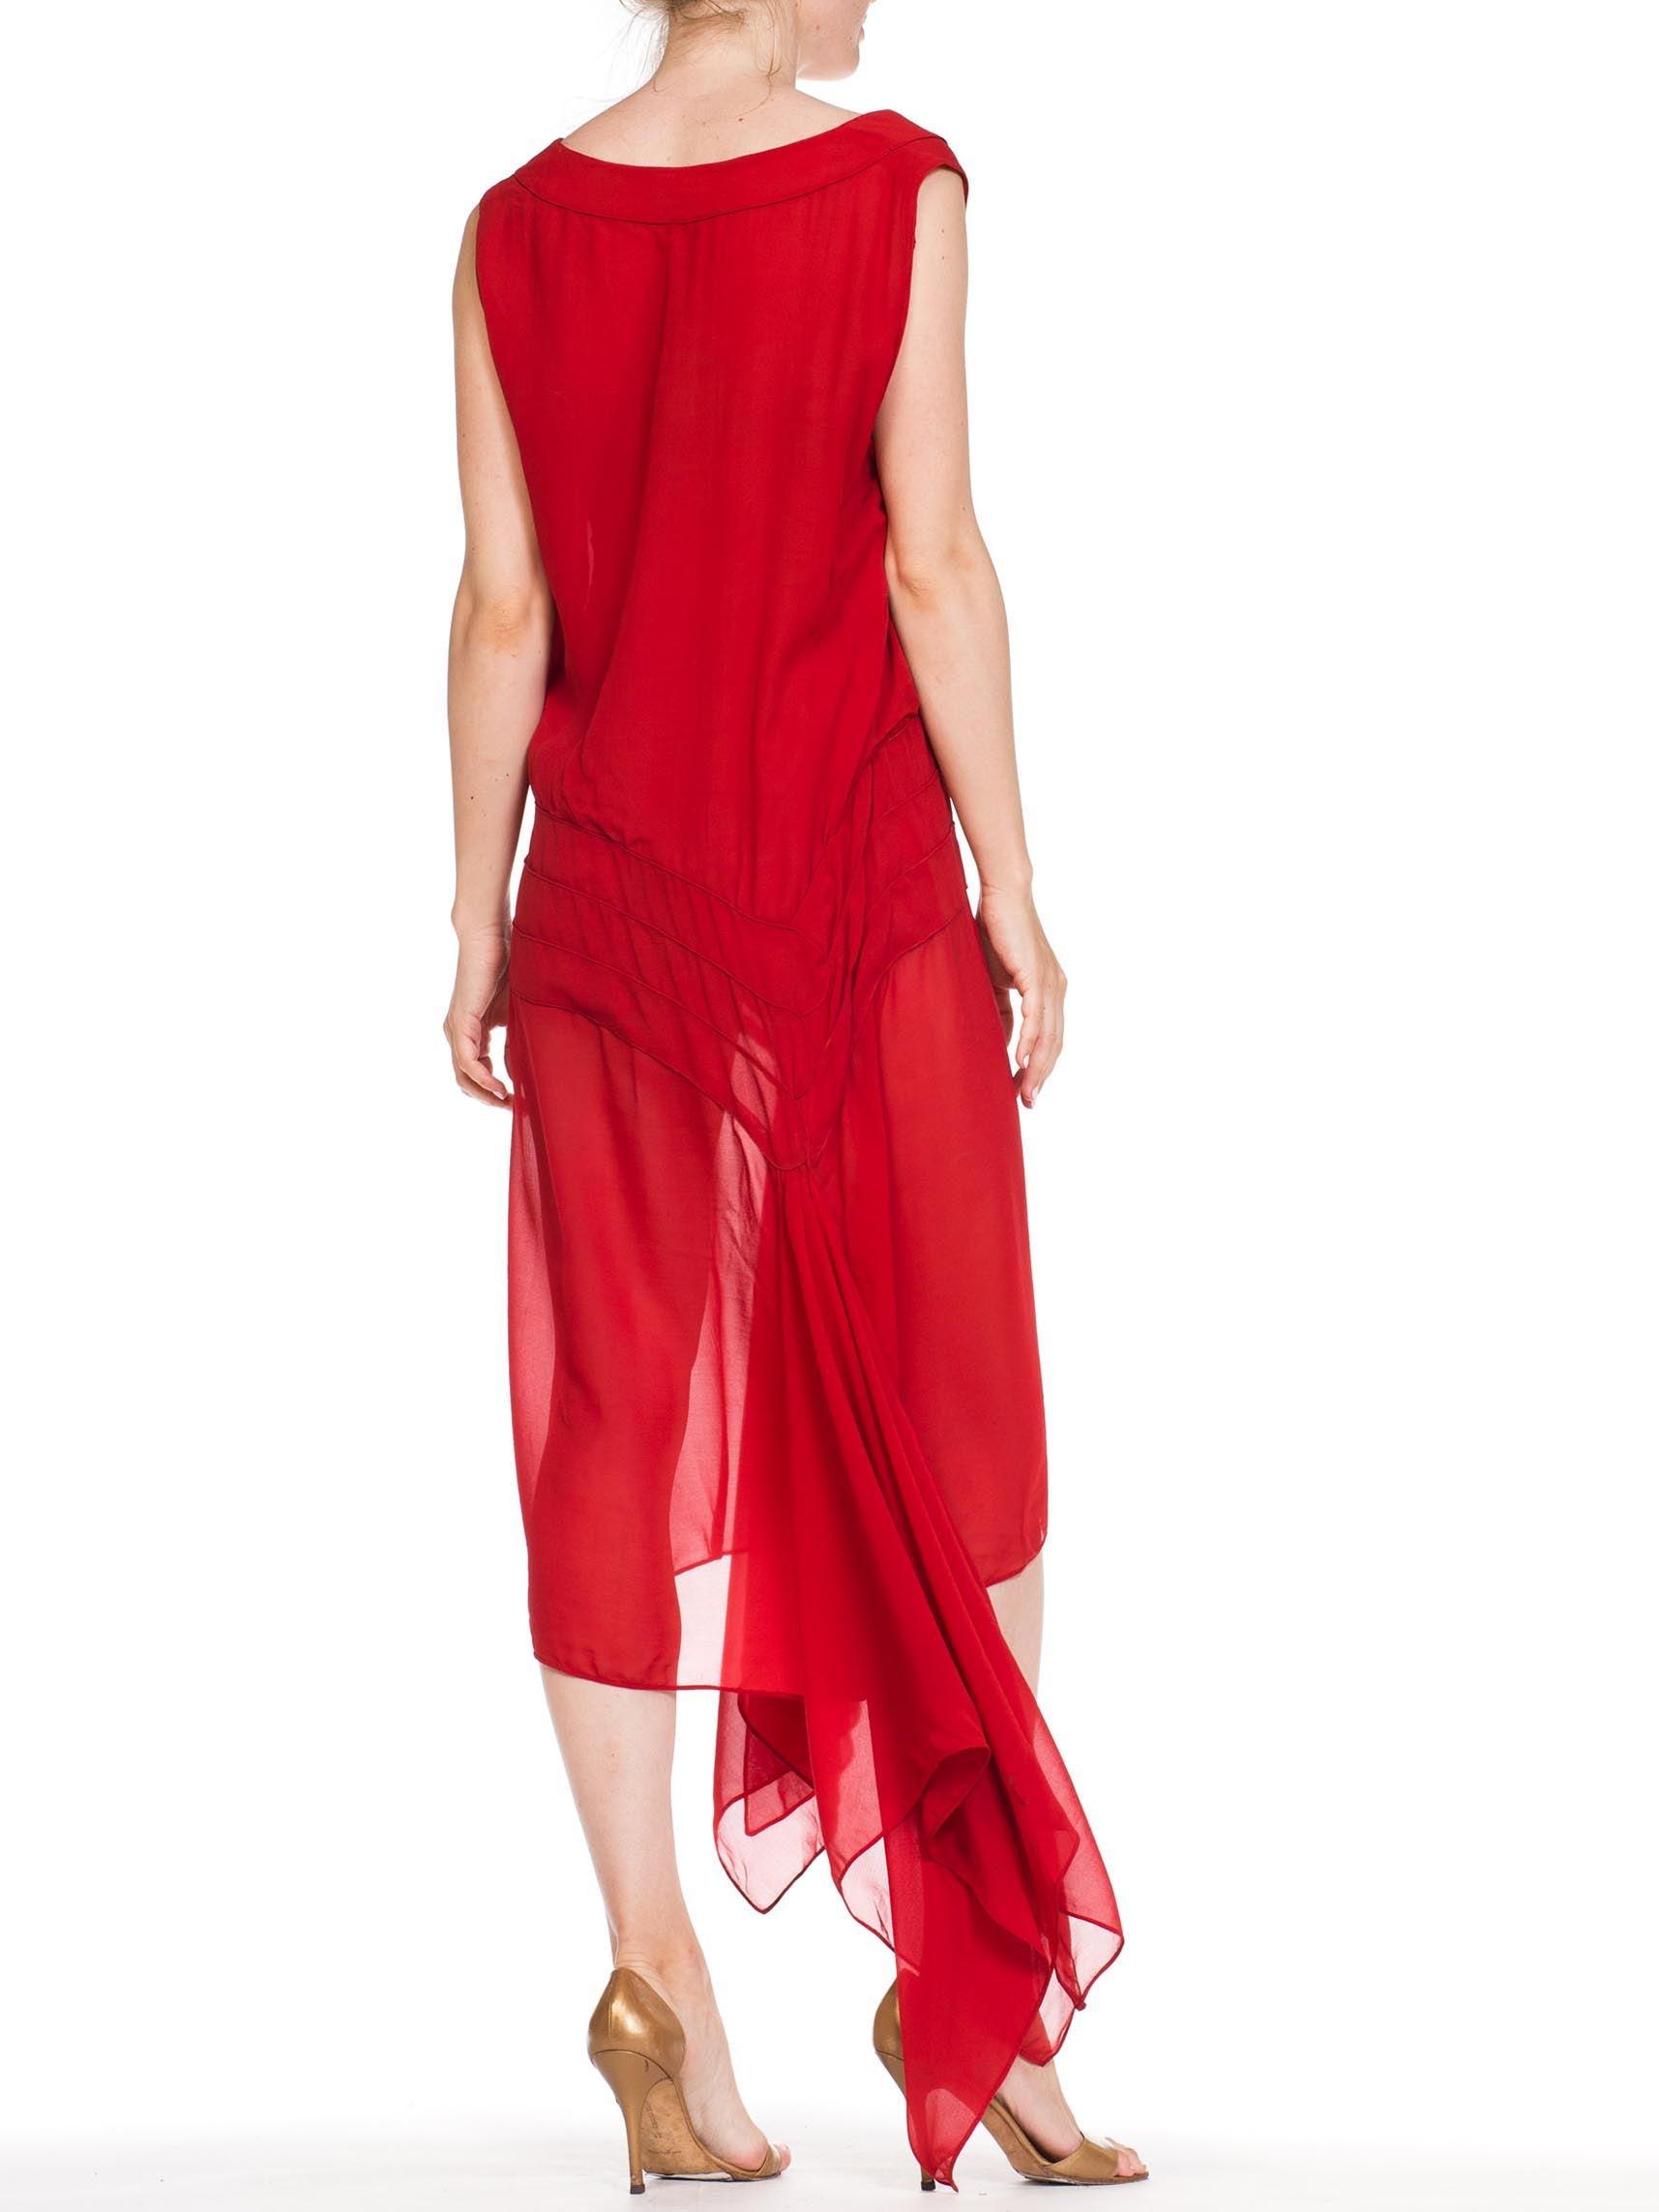 1920S Lipstick Red Haute Couture Silk Chiffon Flutter Hem Dancing Dress With Exceptional Piping & Hand Finishing